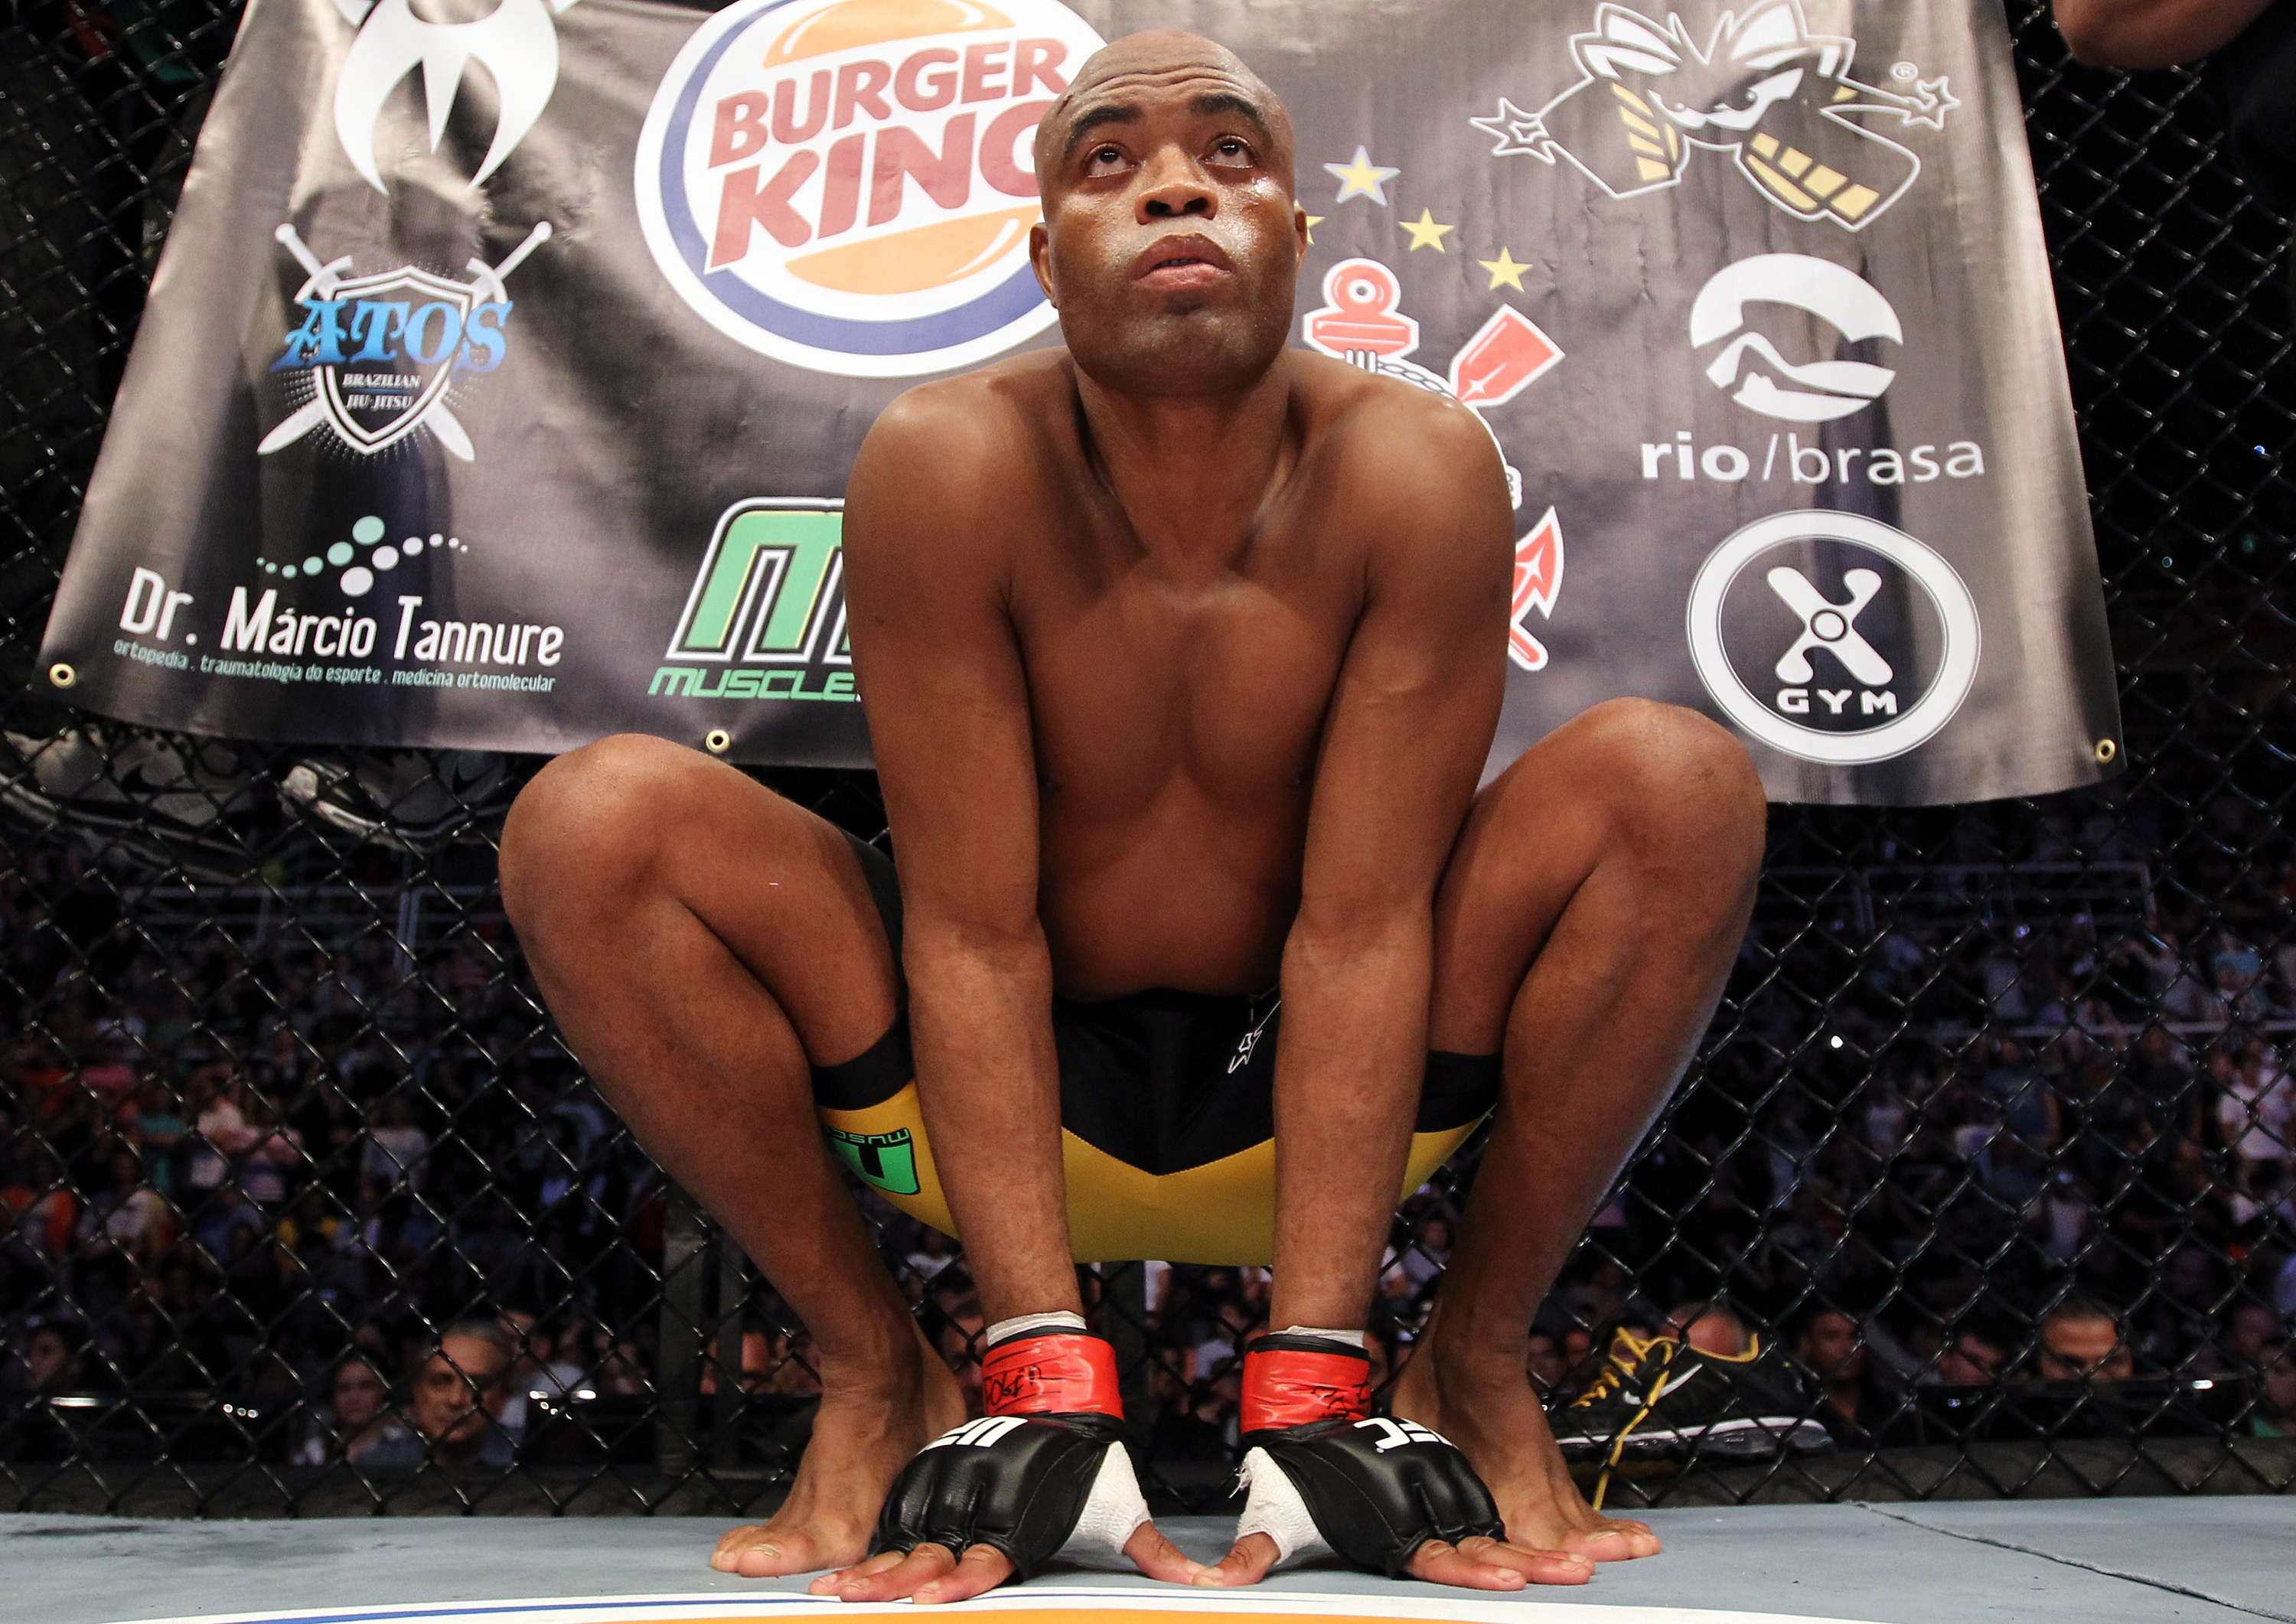 Silva in his infamous pre-fight spider pose